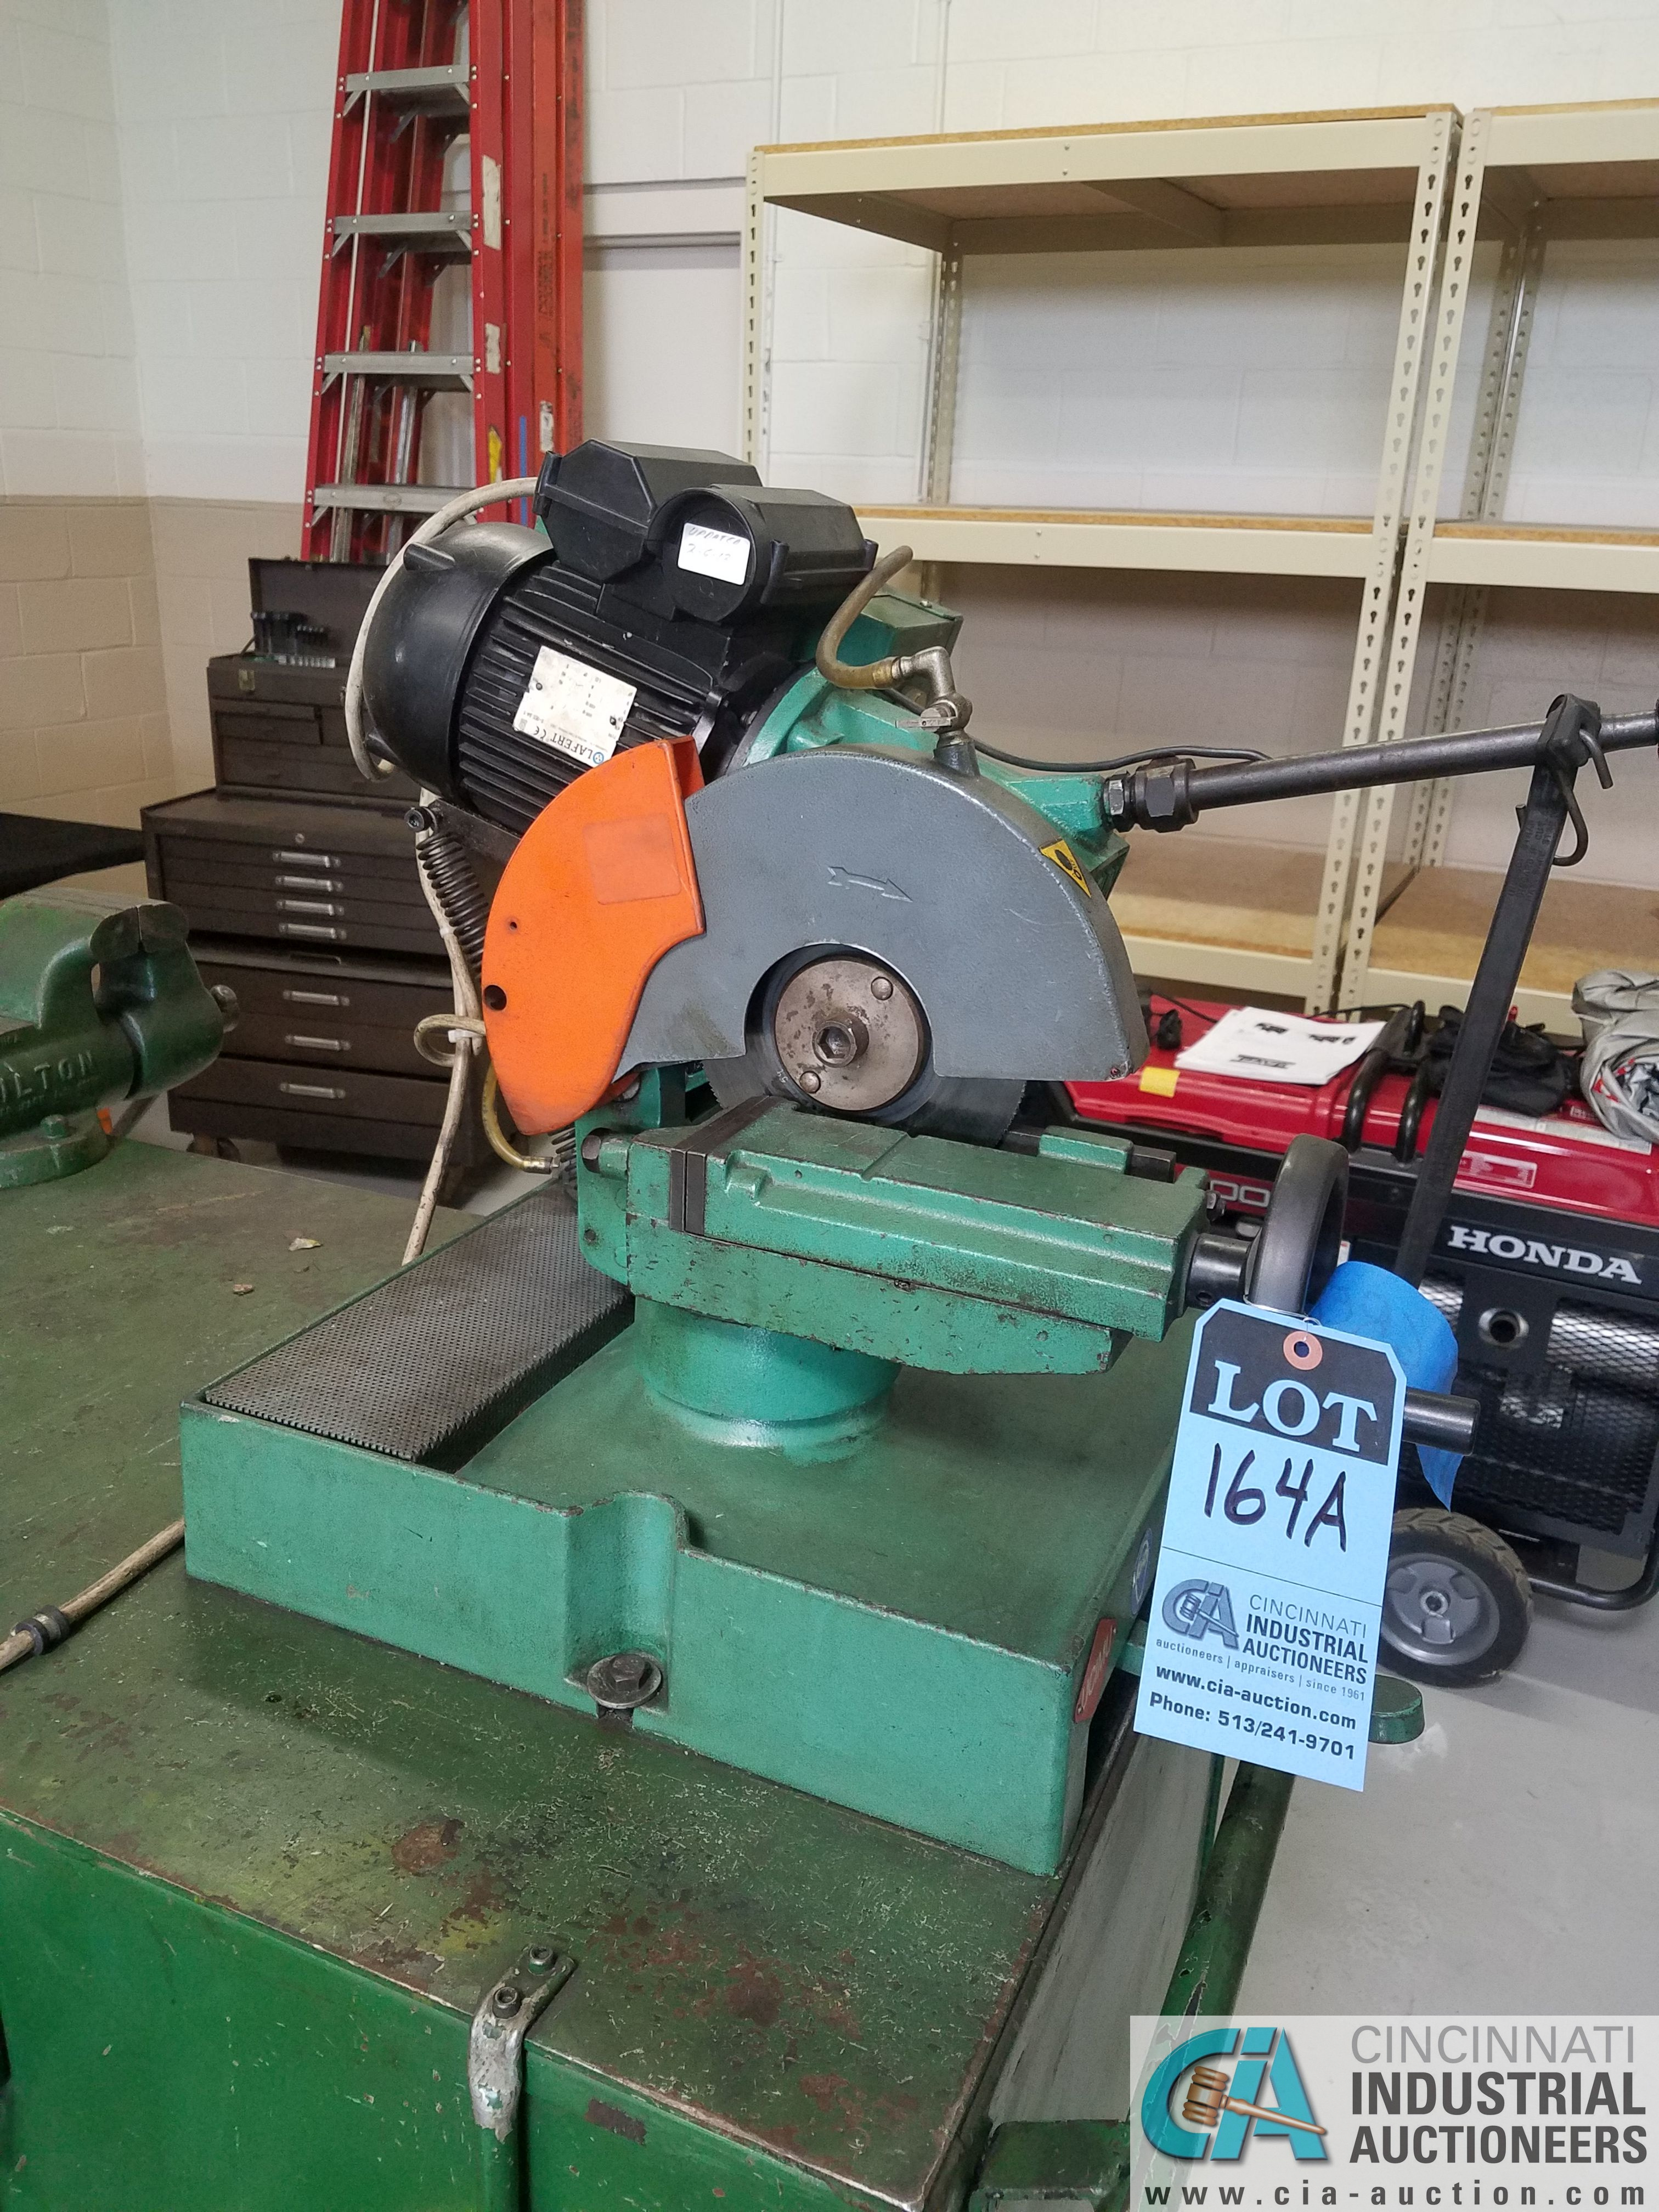 BROWN MODEL 250 TABLE MOUNTED SAW; S/N 034436, MOUNTED ON PORTABLE JOBBOX WITH 4-1/2 BENCH VISE - Image 3 of 6